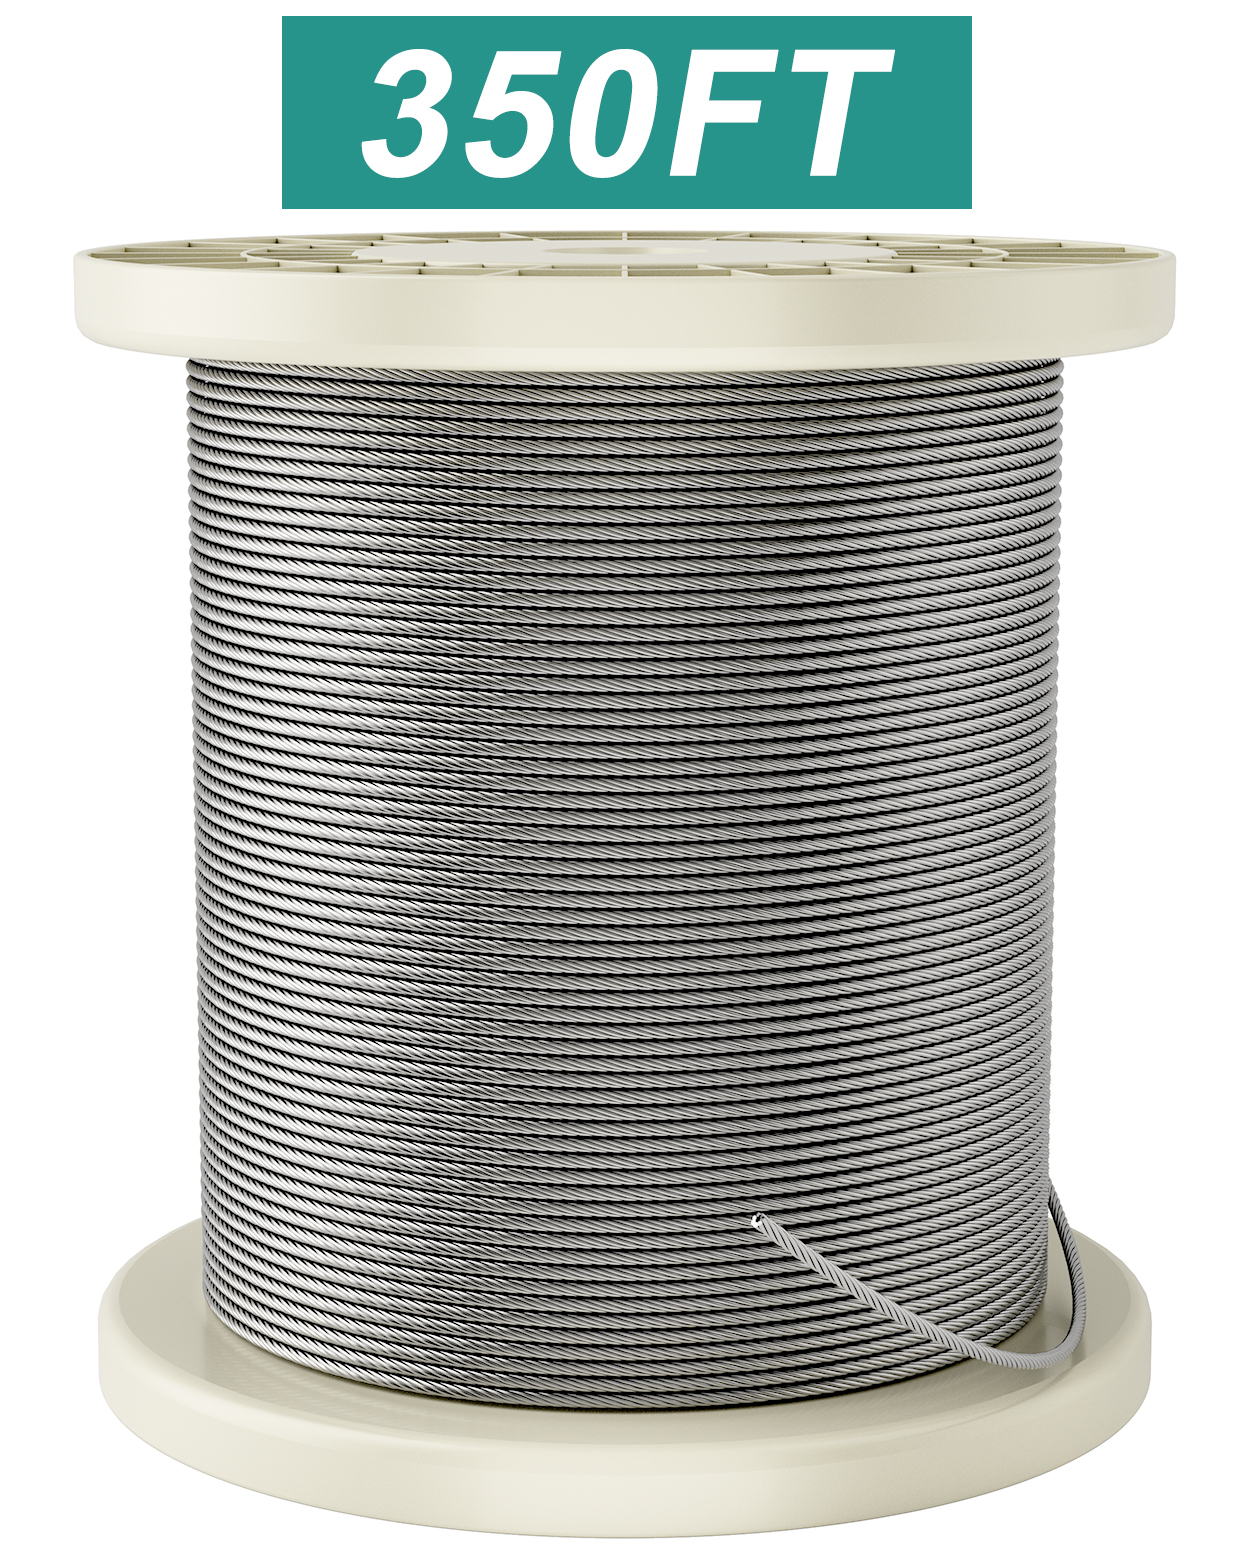 Fil-fresh 1/16 Stainless Steel 350FT, T316 Aircraft Cable Railing Kits for Wood Posts, 7 x 7 Cable Railing Hardware